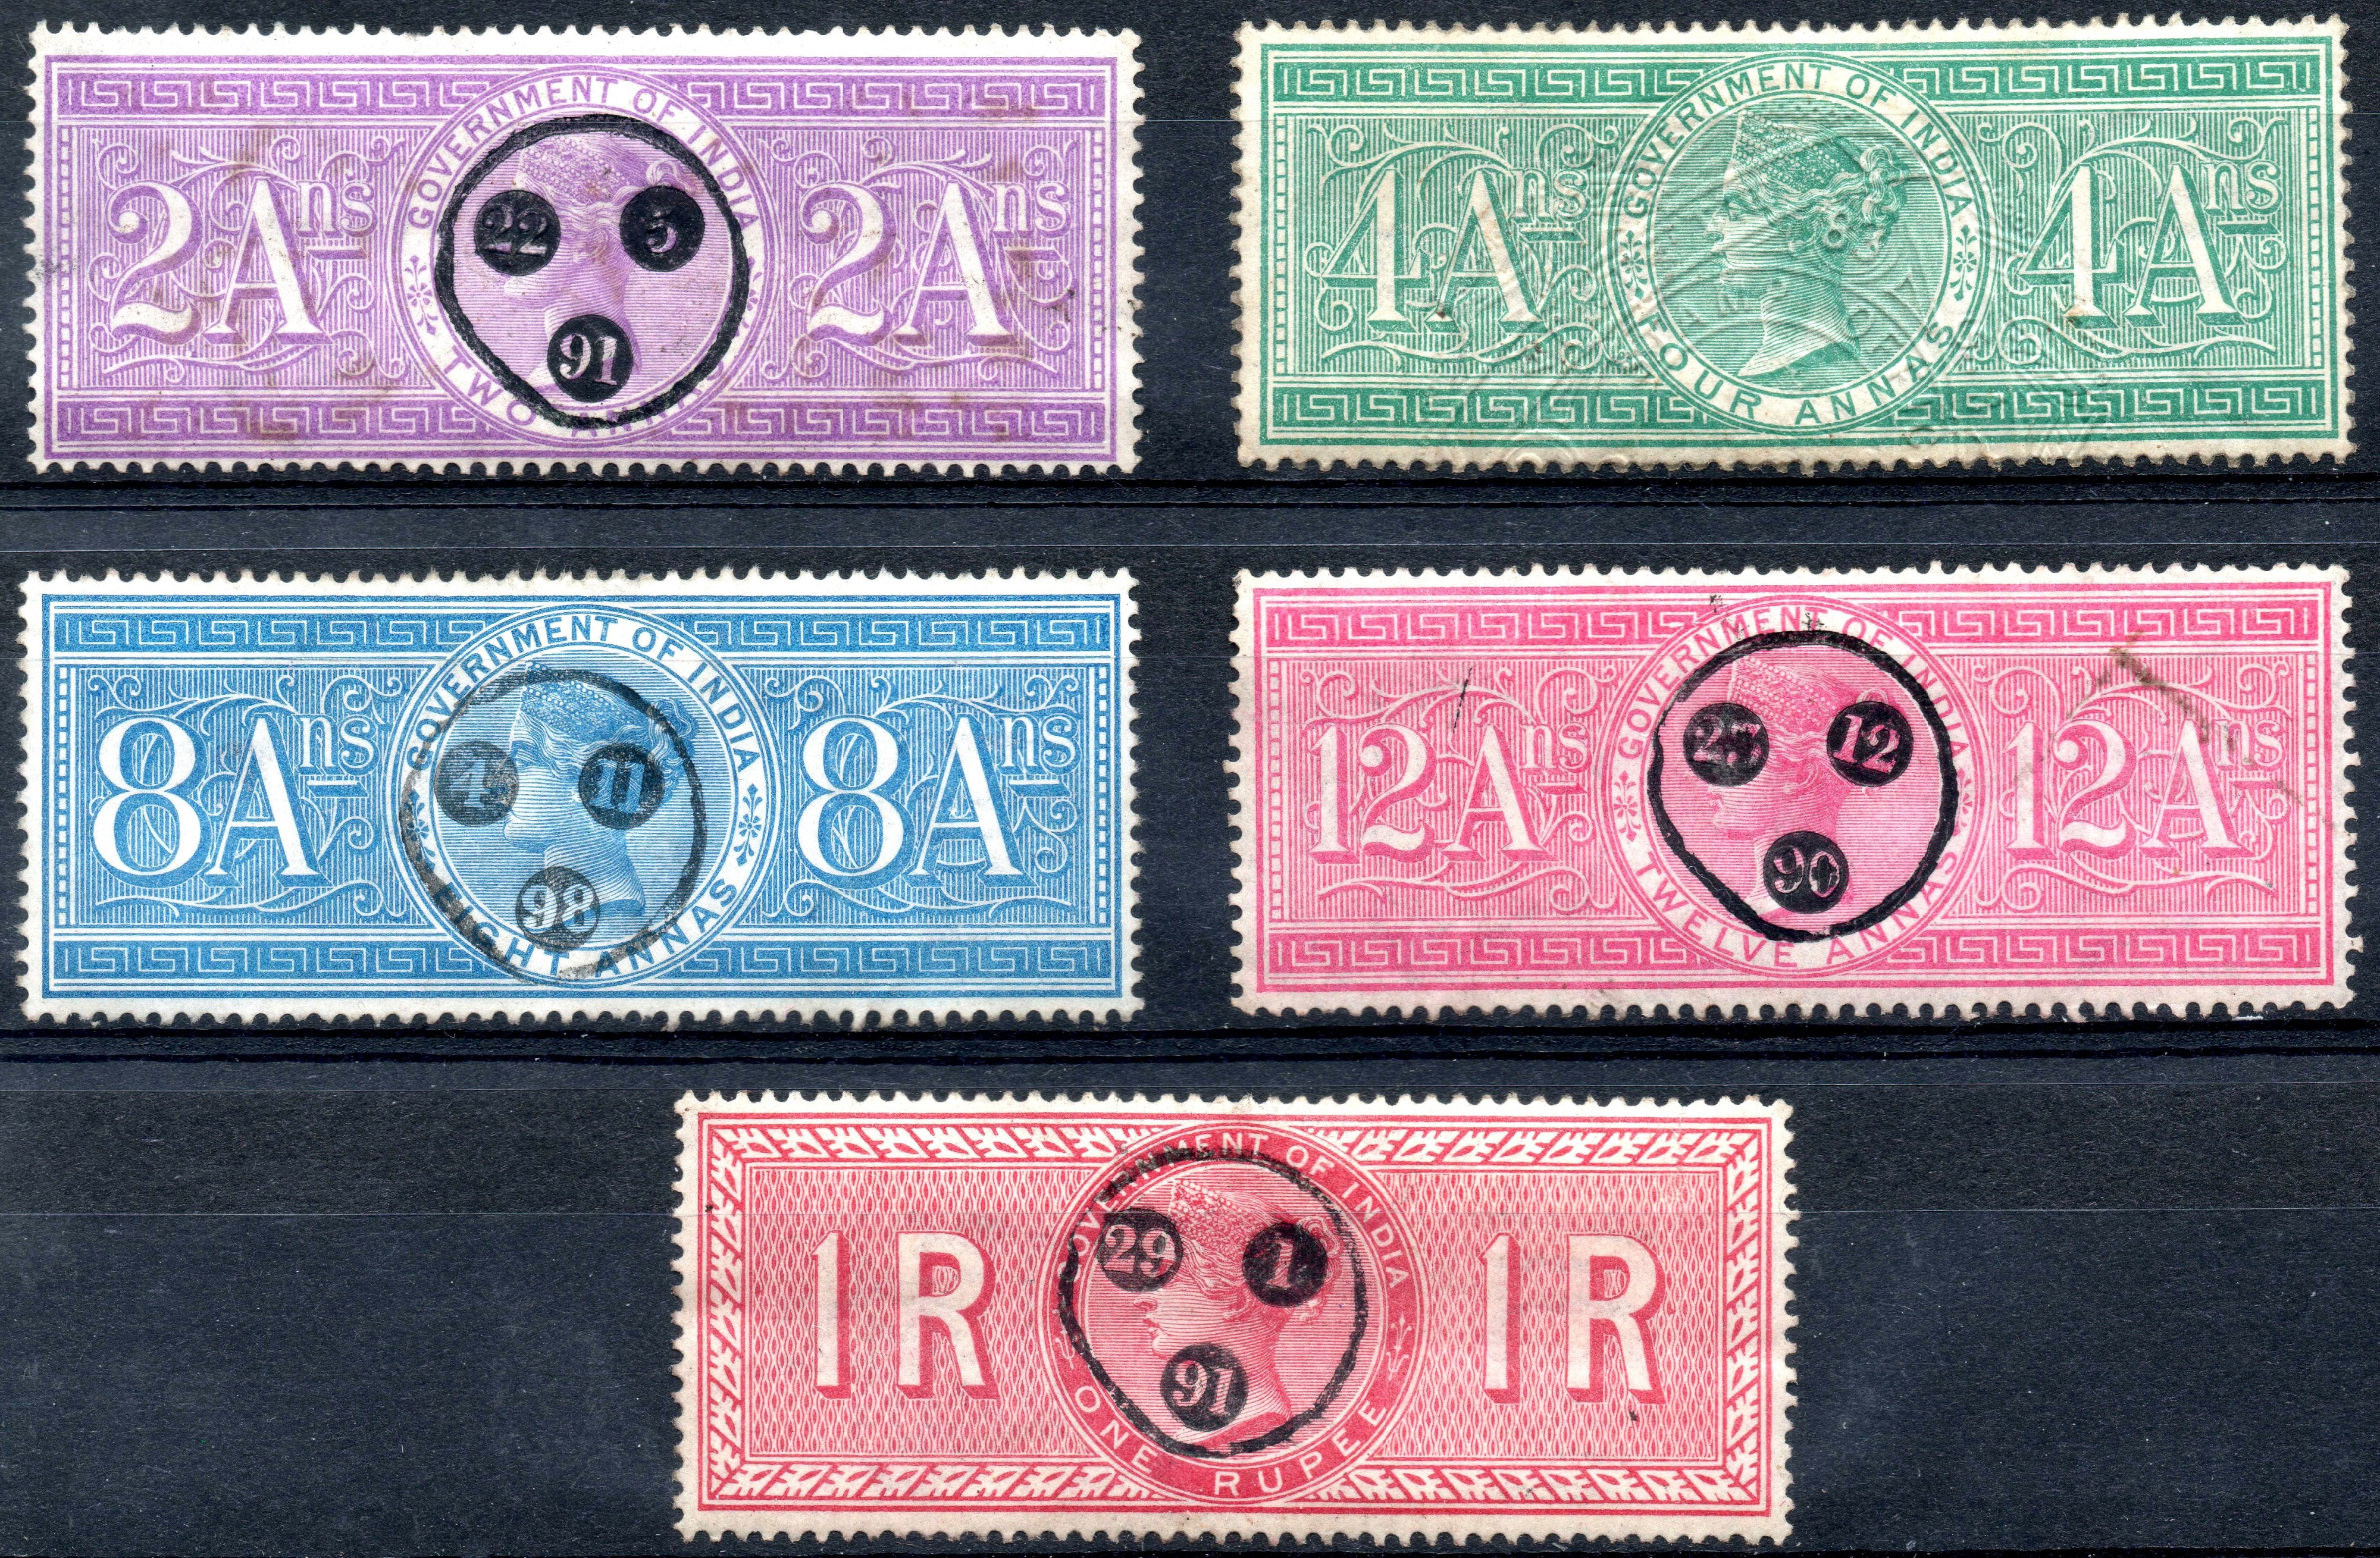 Five India 1868 Special Adhesive Revenue Stamps